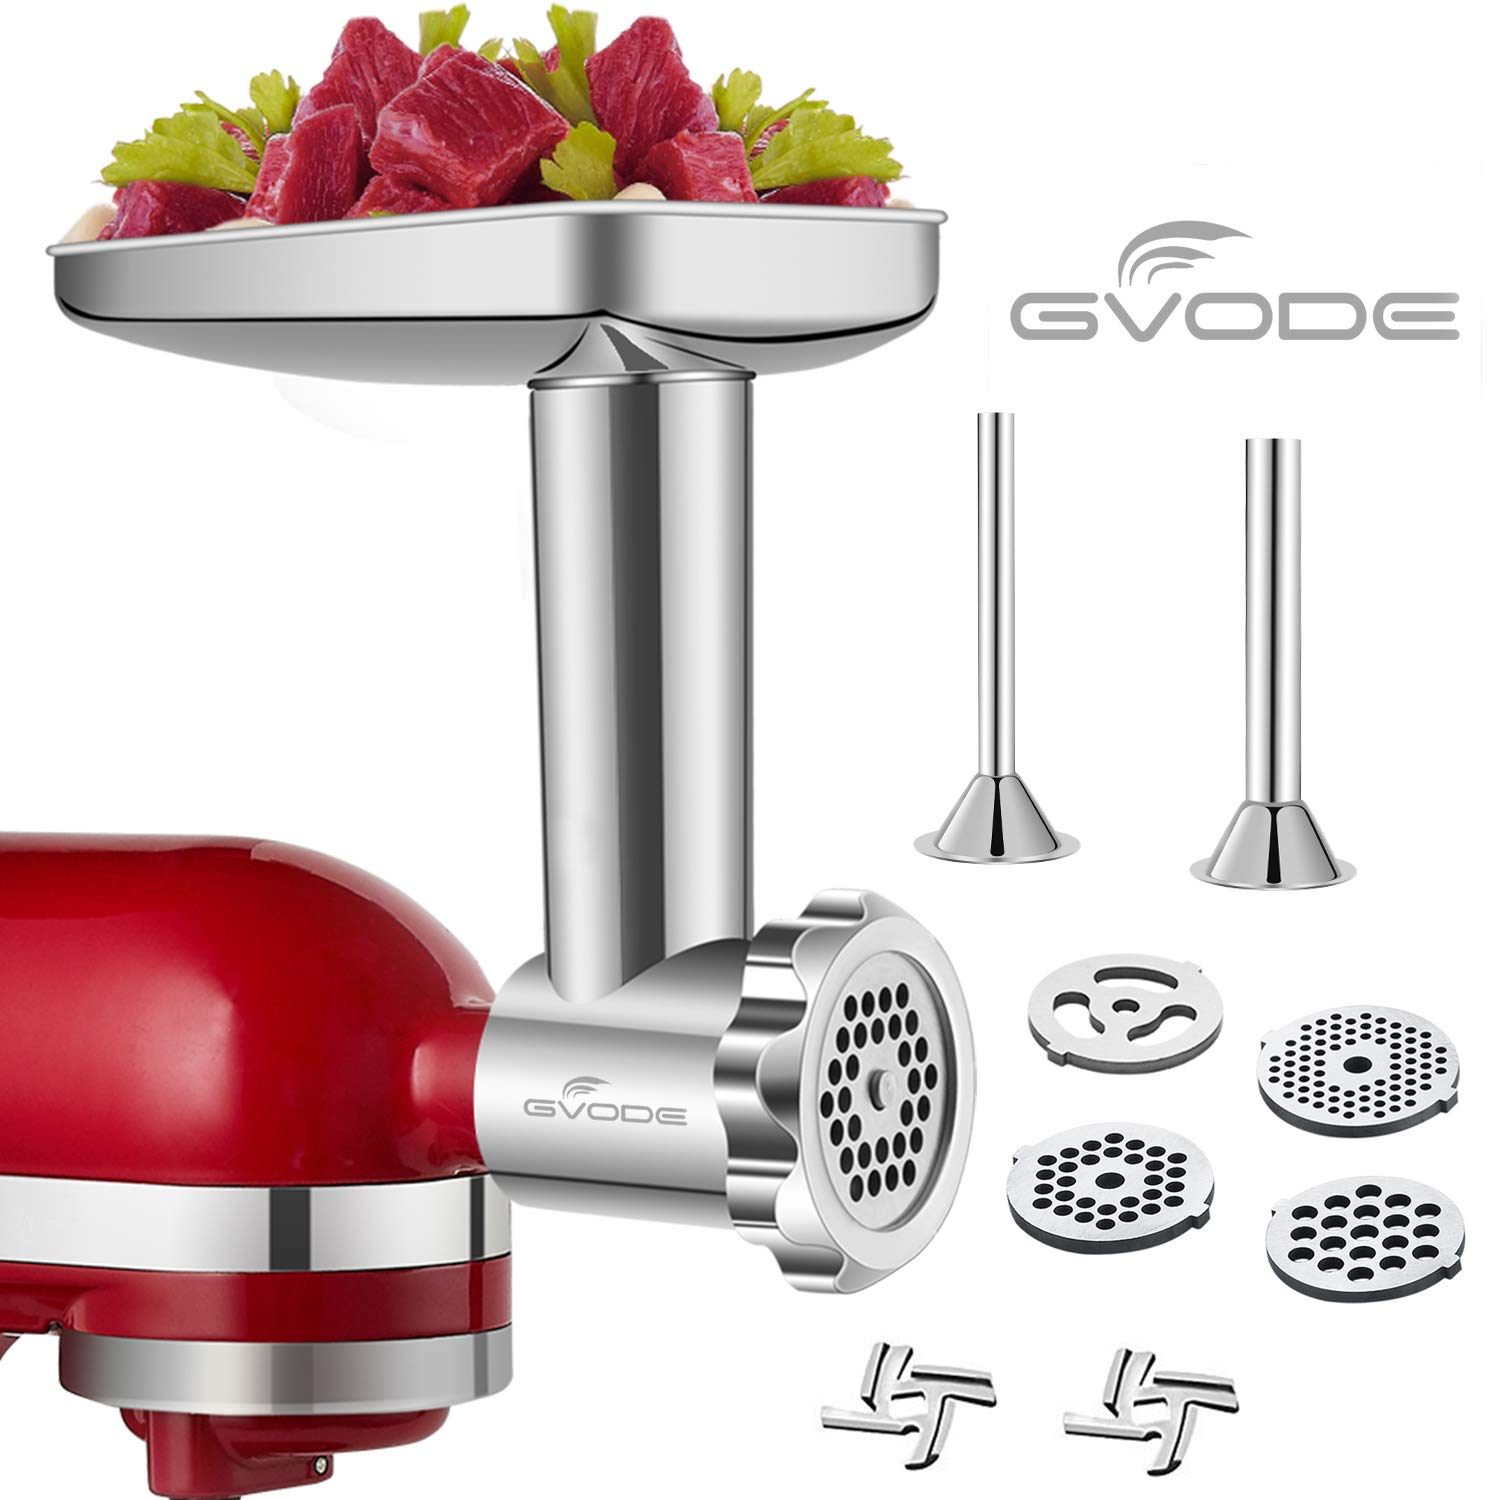 Stainless Steel Food Grinder Accessories for KitchenAid Stand Mixers Including Sausage Stuffer, Stainless Steel,Dishwasher Safe by GVODE